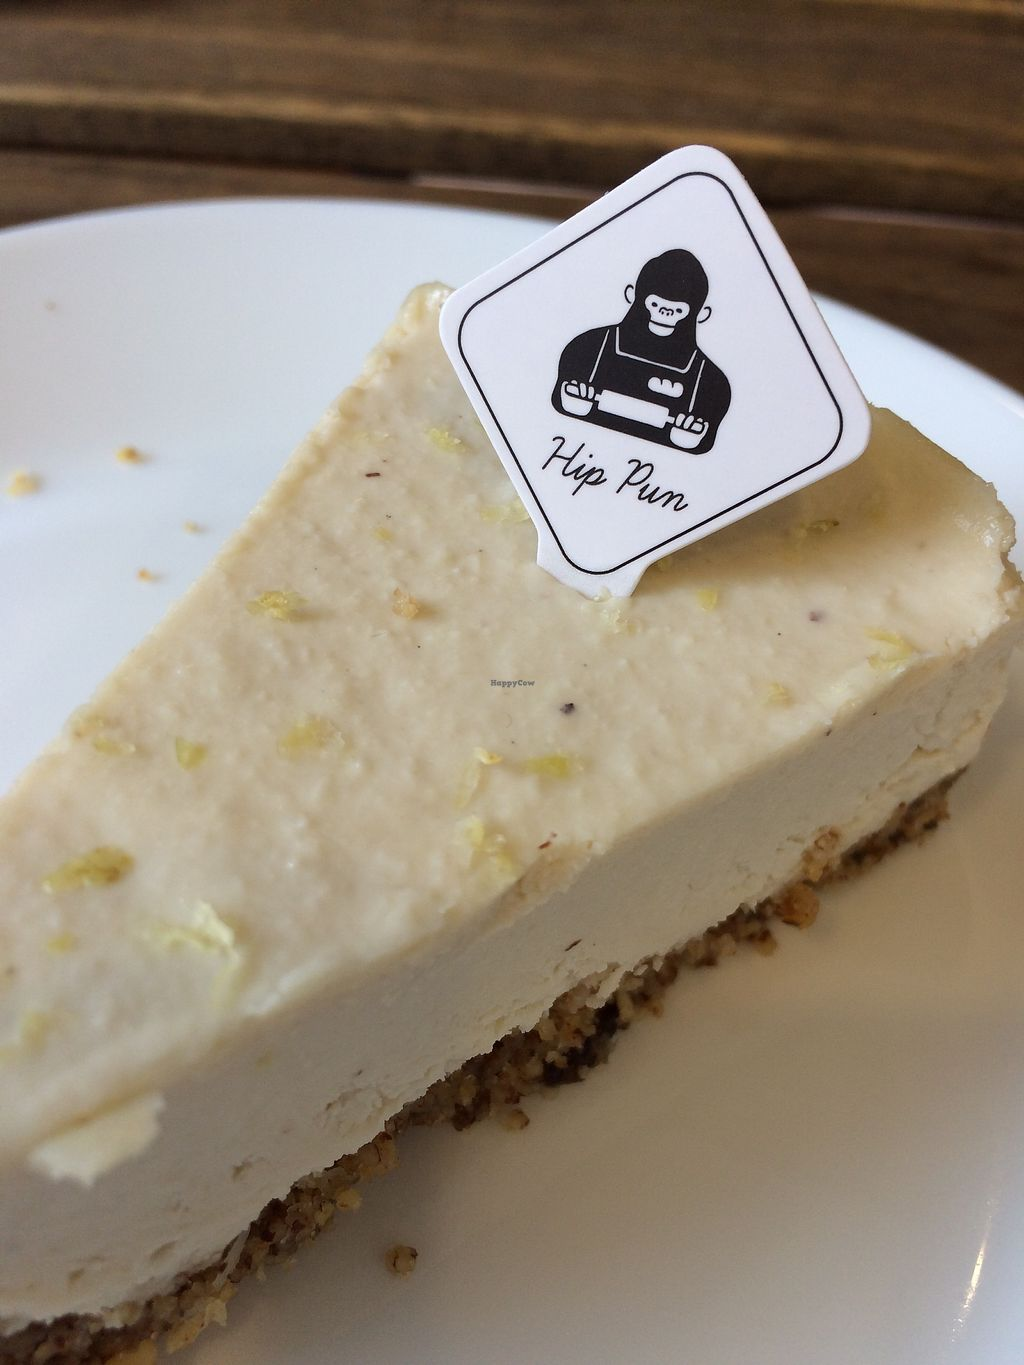 """Photo of Hip Pun  by <a href=""""/members/profile/JesseFletcher"""">JesseFletcher</a> <br/>Vegan cheesycake at NT85 a slice <br/> October 20, 2017  - <a href='/contact/abuse/image/93222/316827'>Report</a>"""